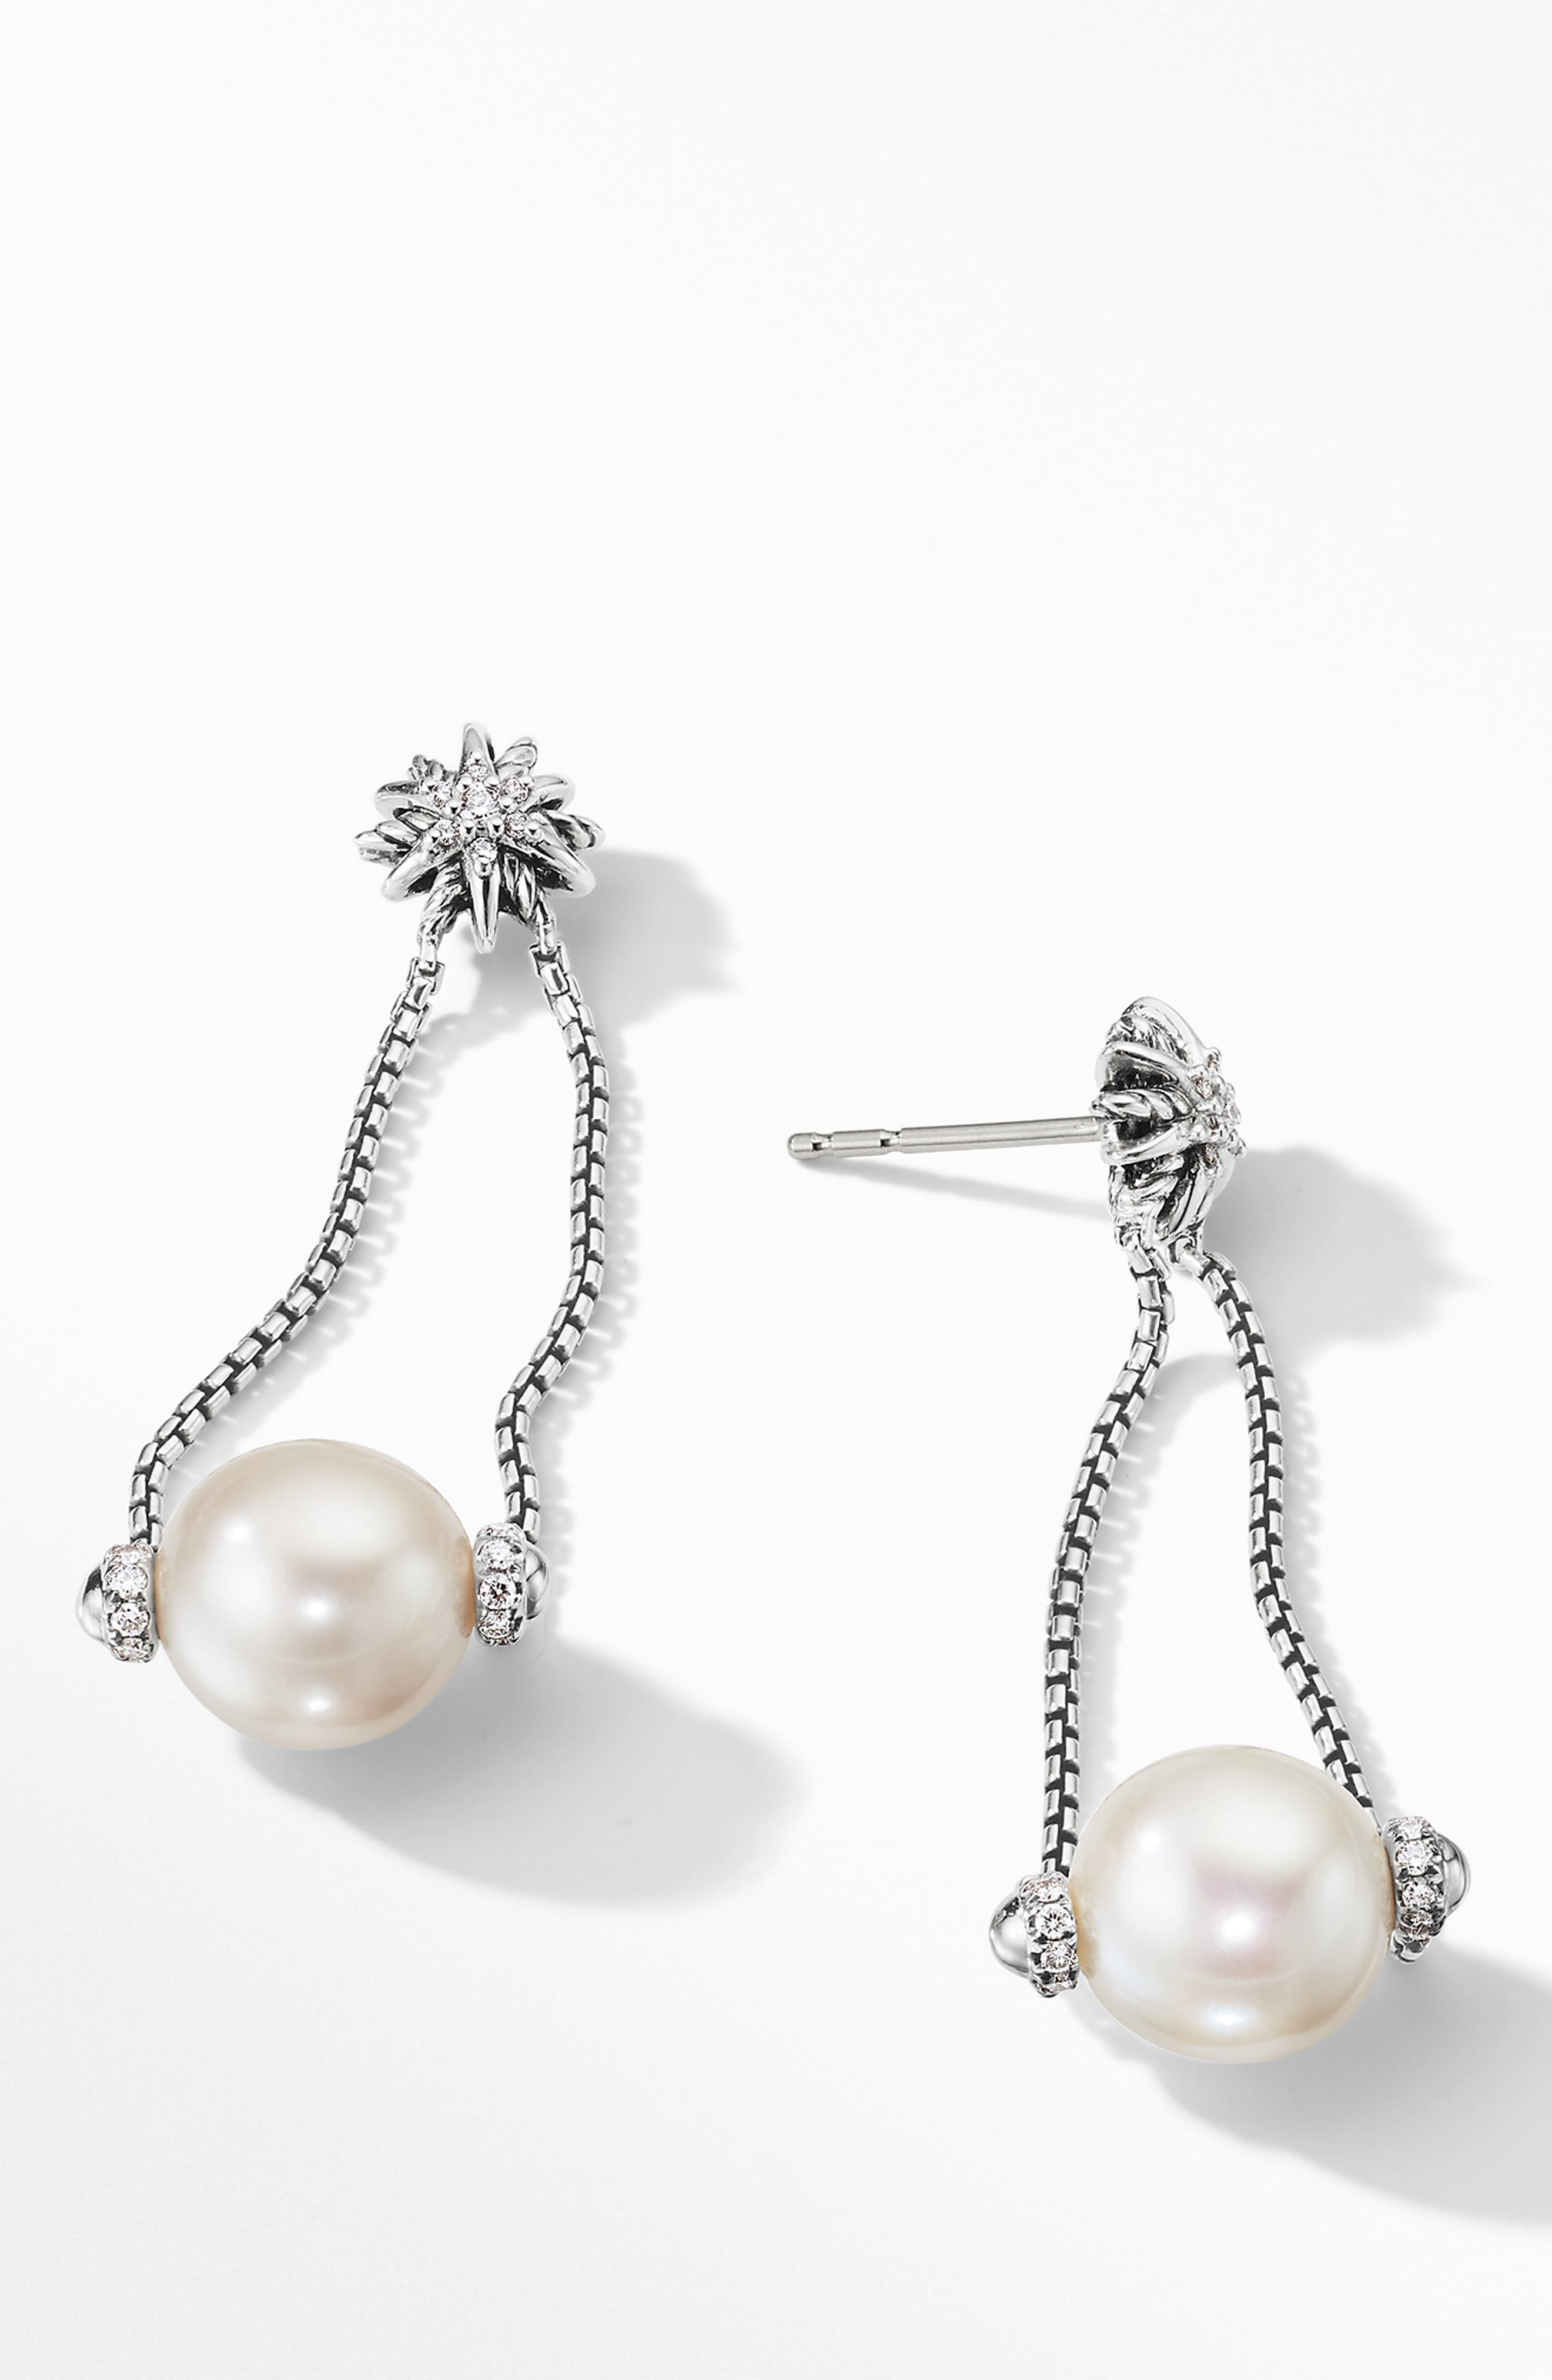 Starburst Pearl Drop Earrings with Diamonds,                             Alternate thumbnail 2, color,                             PEARL